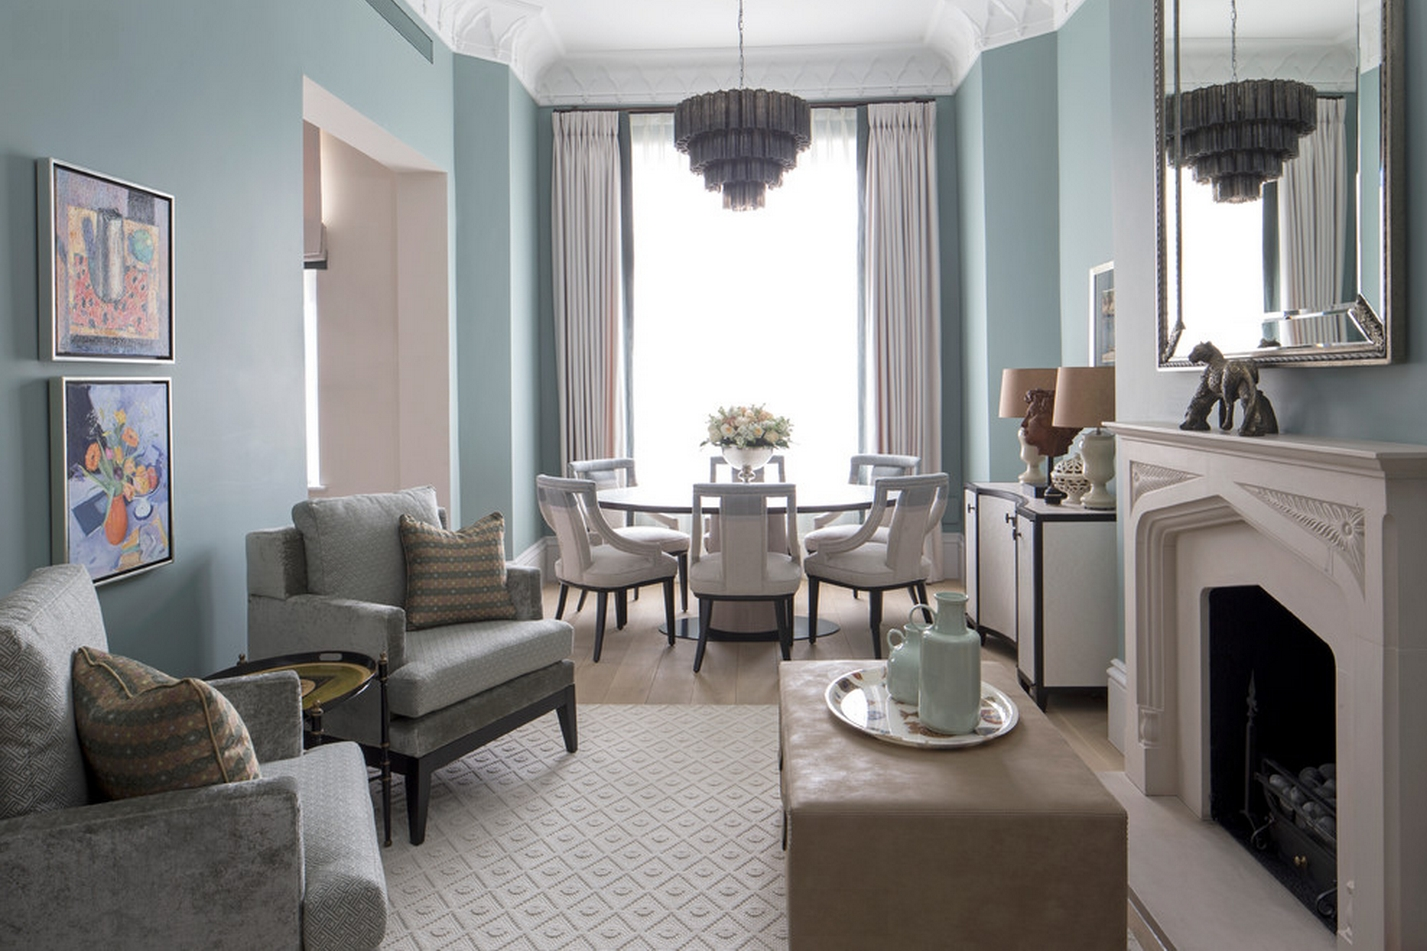 7 Ways To Use Duck Egg Blue To Spruce Up Your Living Room 30+ Living Room Decorating Duck Egg Inspirations